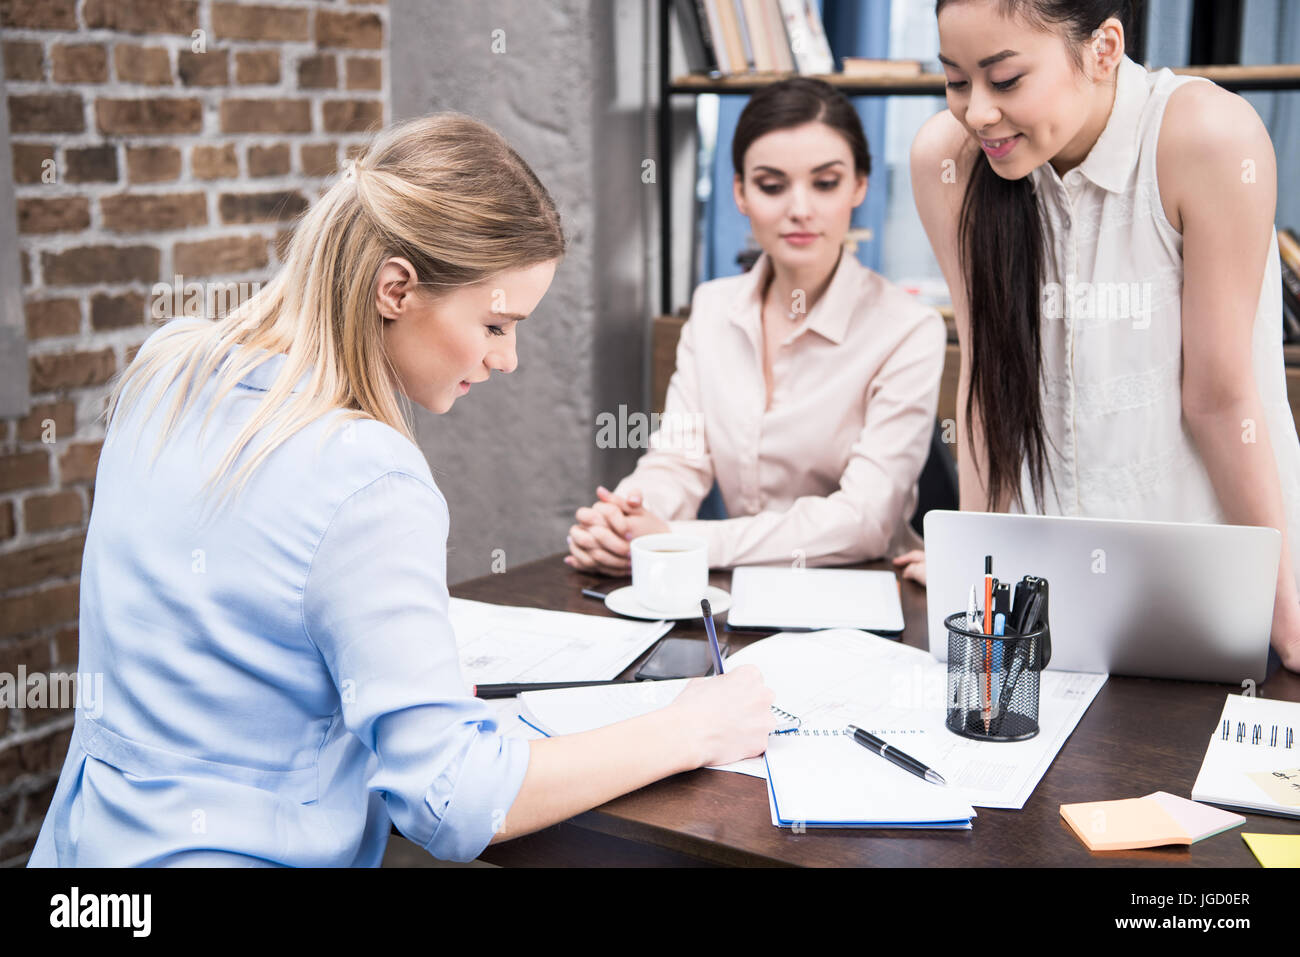 multicultural businesswomen discussing project and writing something in notepad at workspace - Stock Image